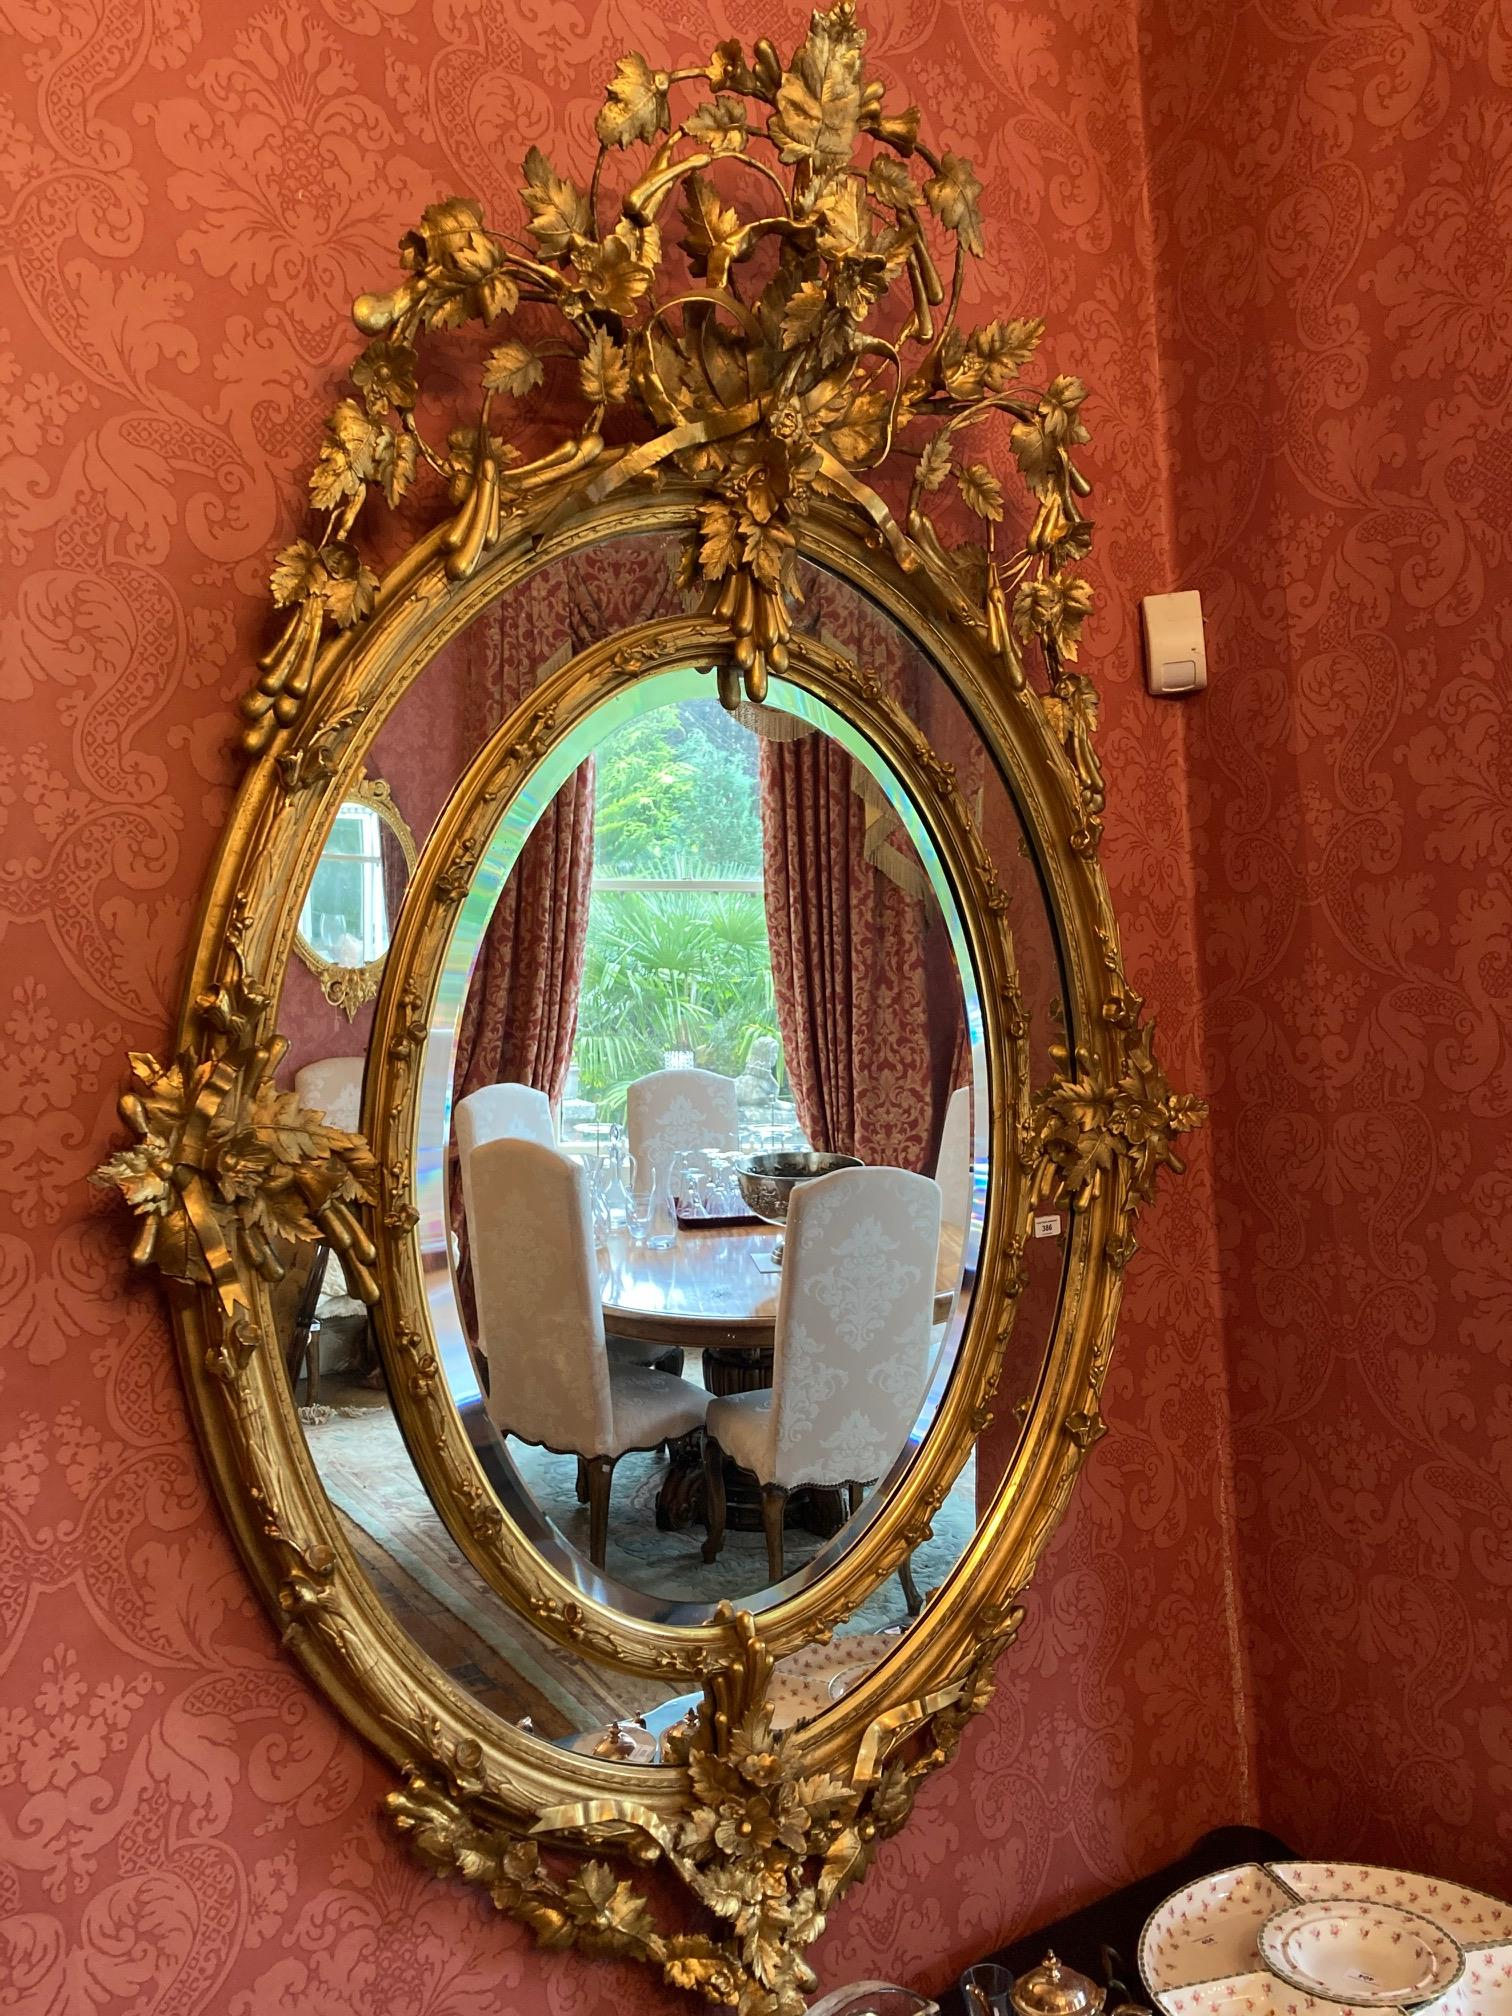 A superb large 19th Century oval gilt Wall Mirror, the ornate crest with scrolling foliage and - Image 7 of 7